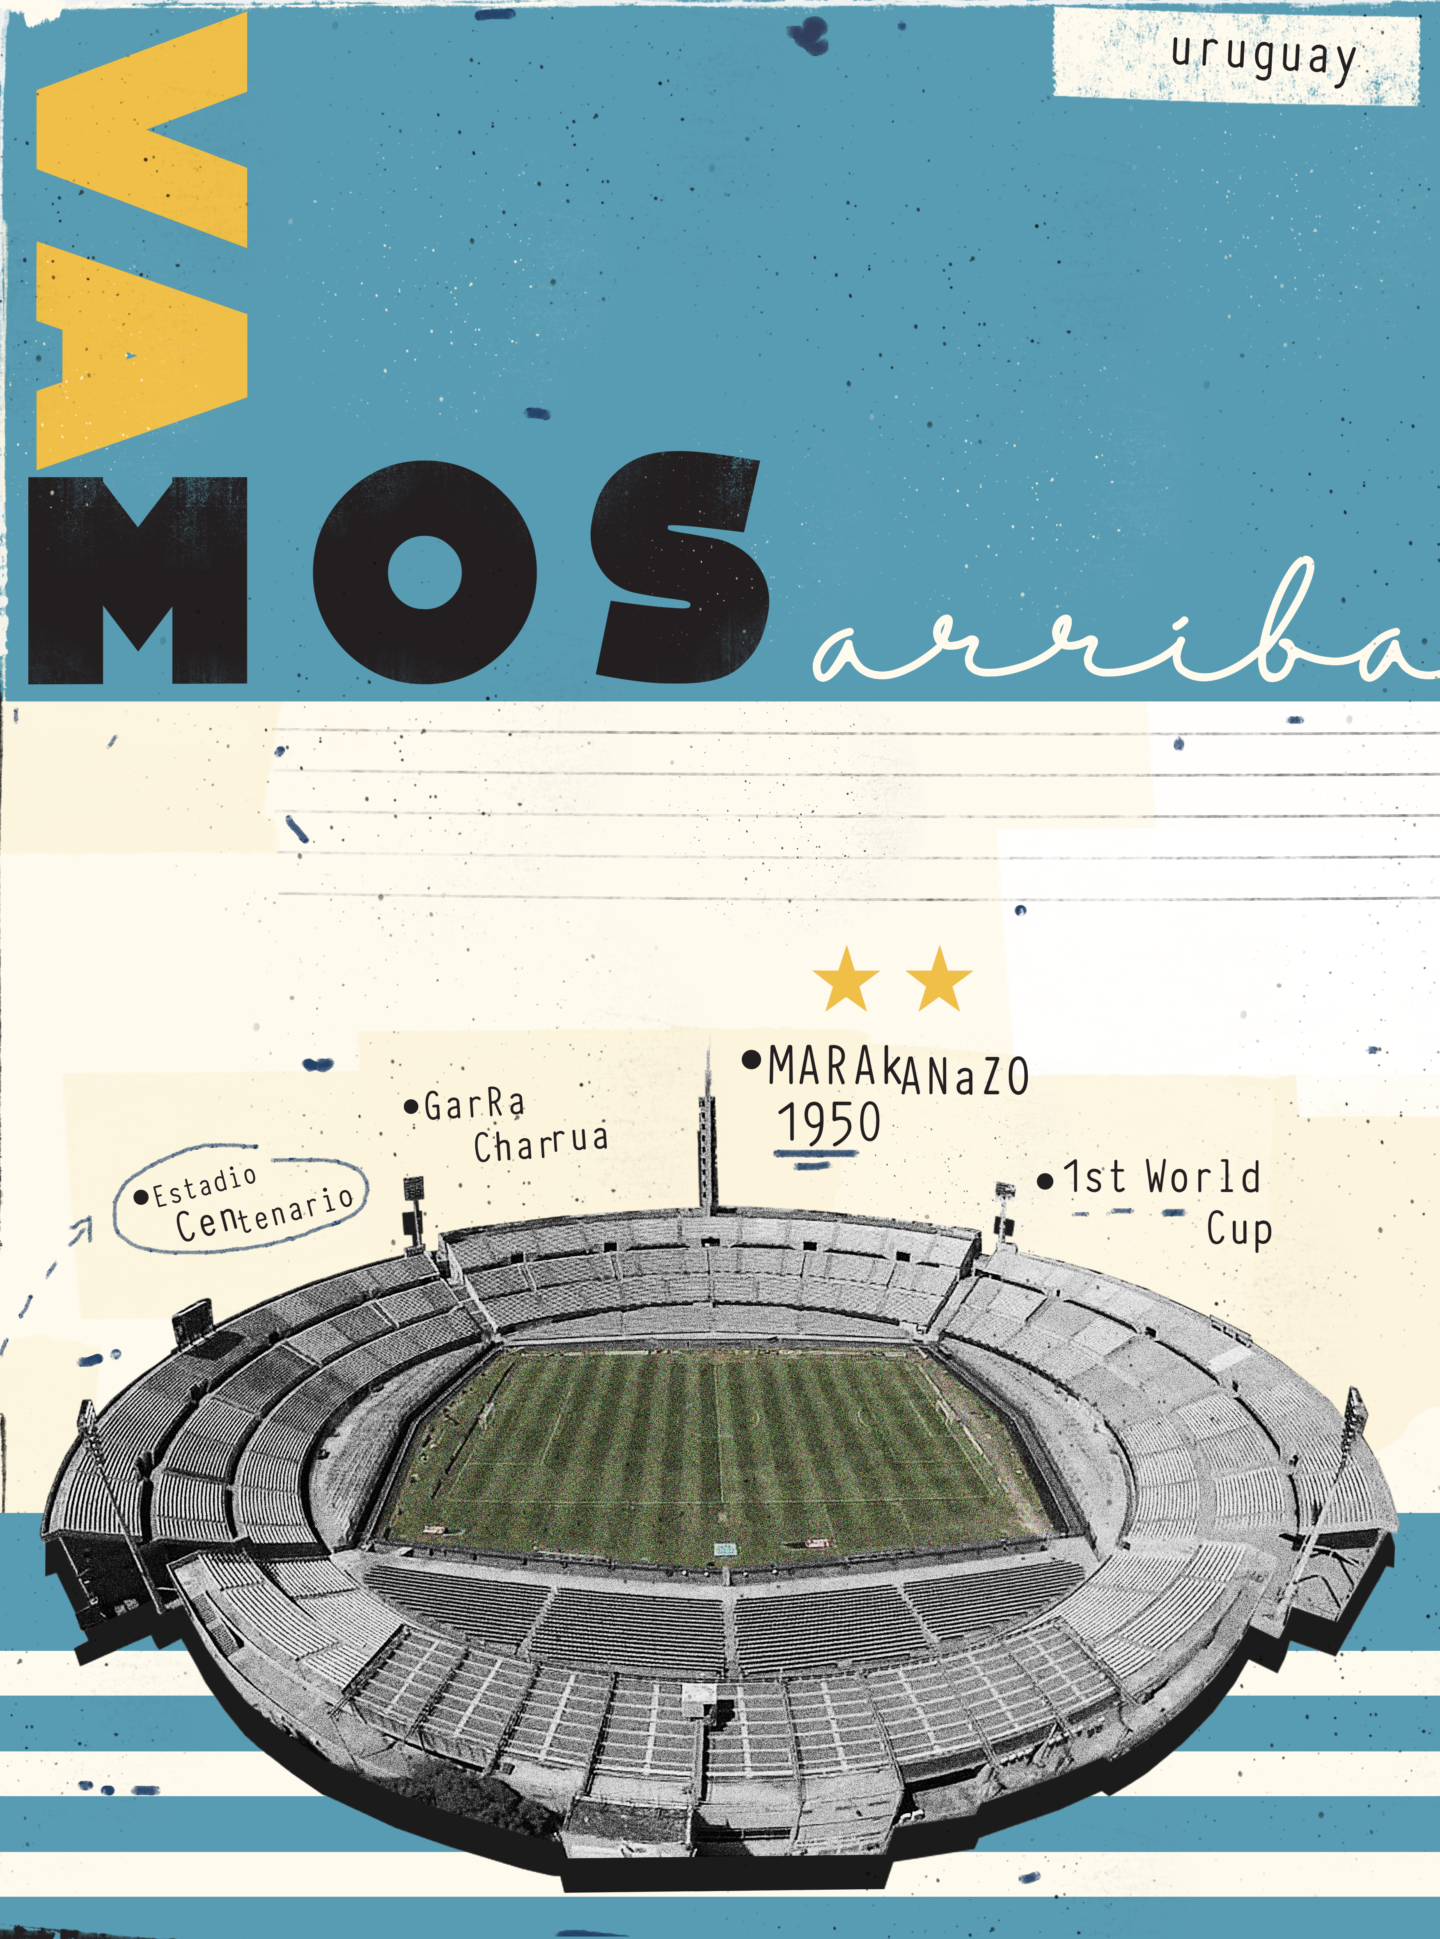 Montevideo and the cradle of Uruguayan football